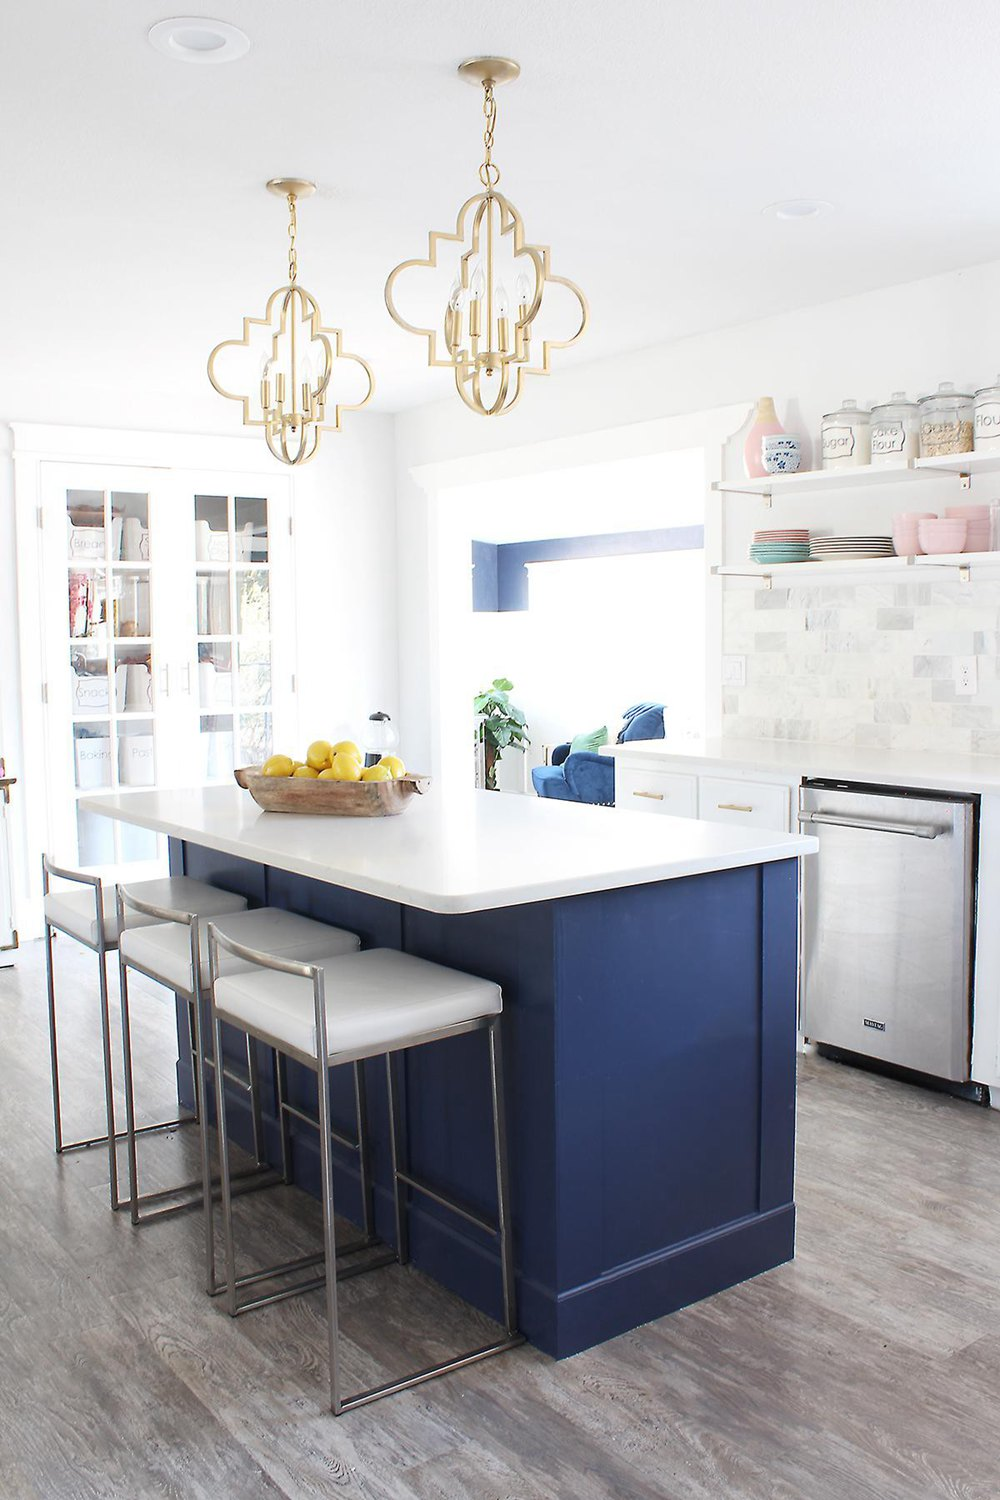 6. DIY Kitchen Island For Large Family